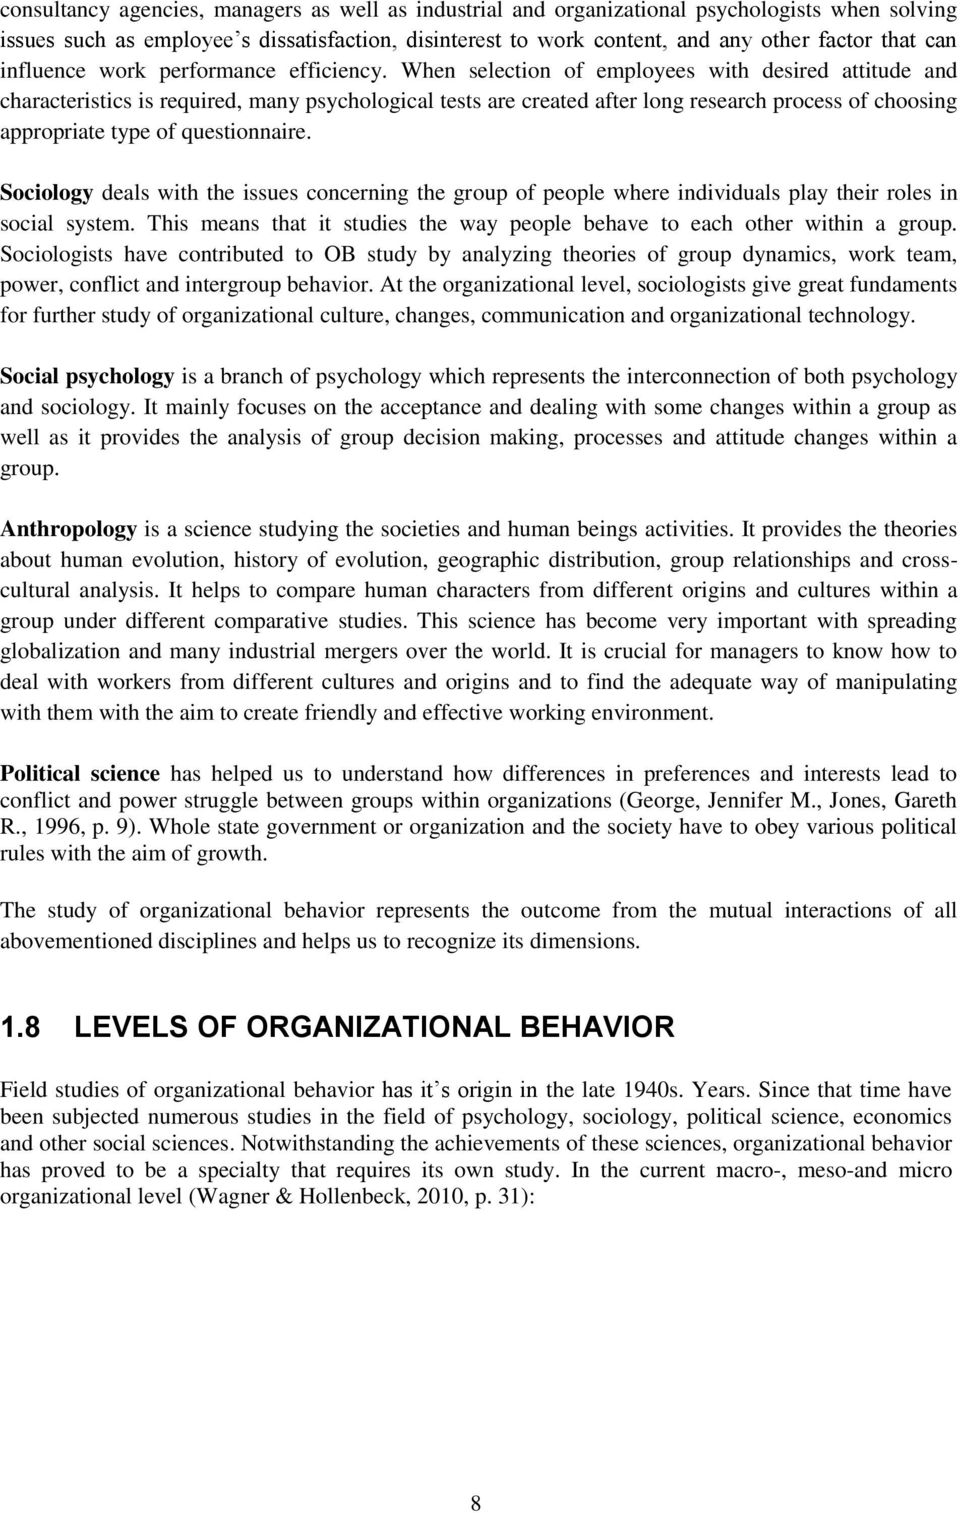 Organizational behavior subsystems College paper Example - August